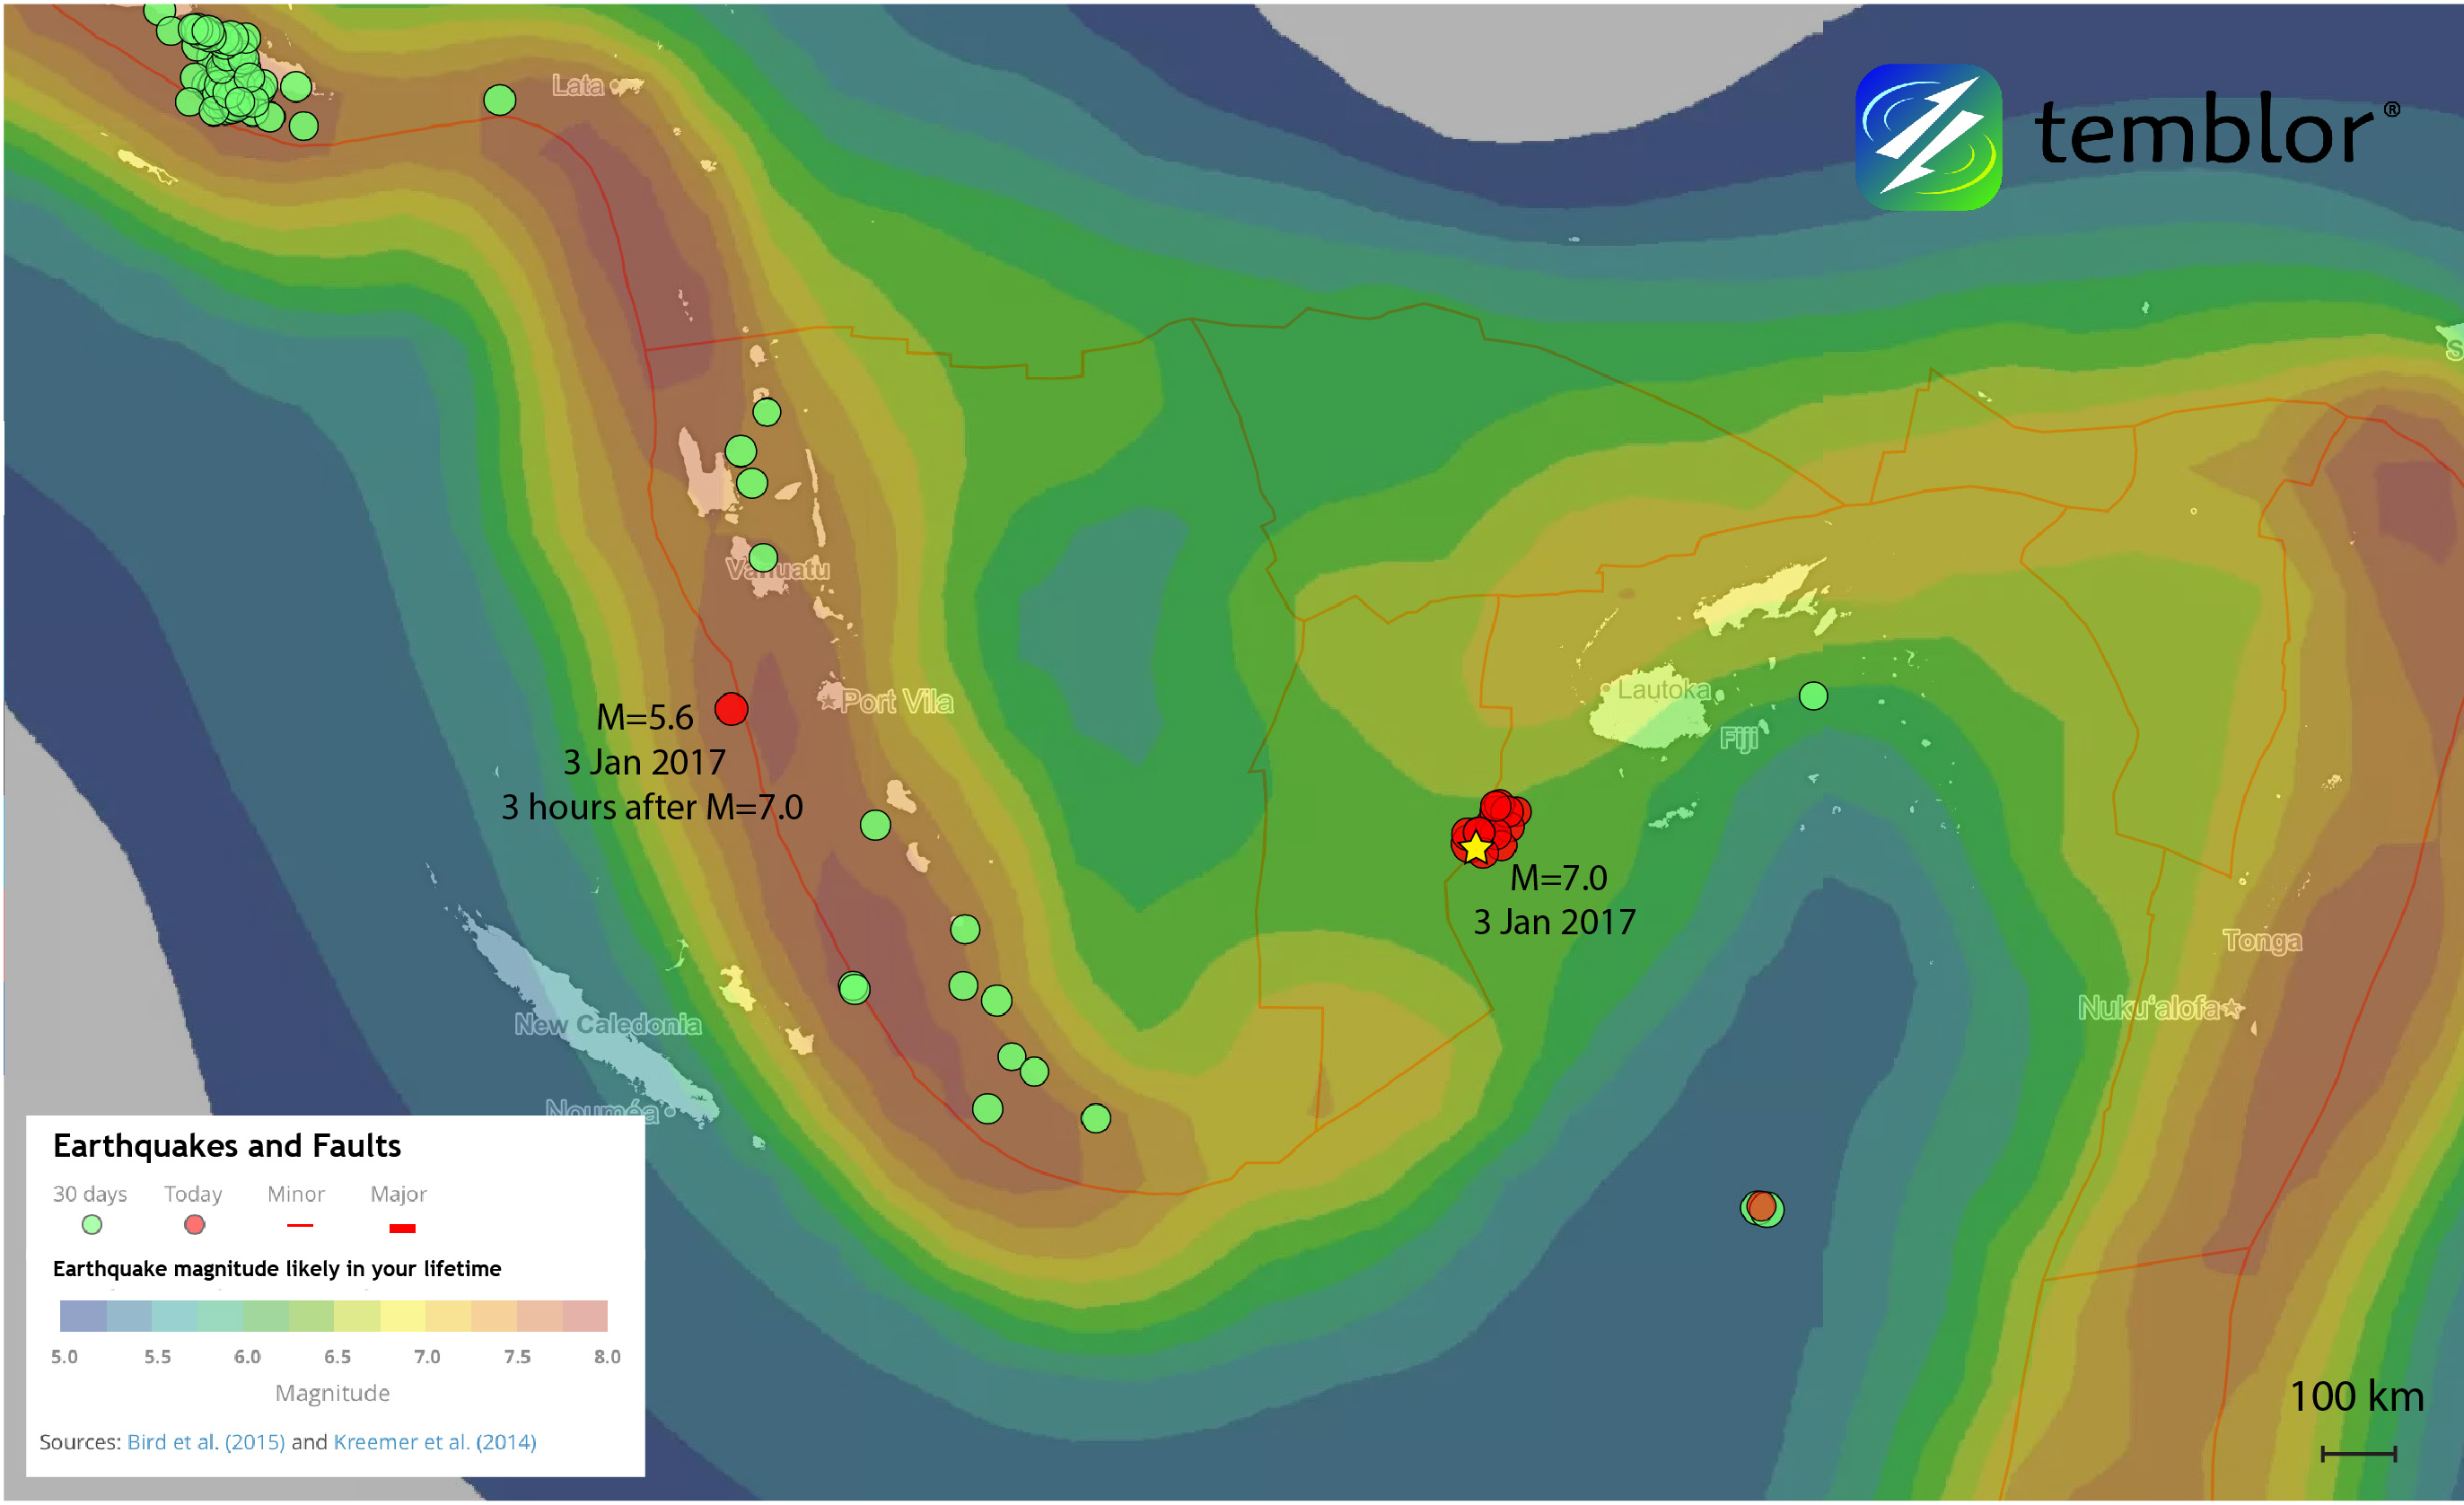 fiji-earthquake-map-global-earthquake-activity-rate